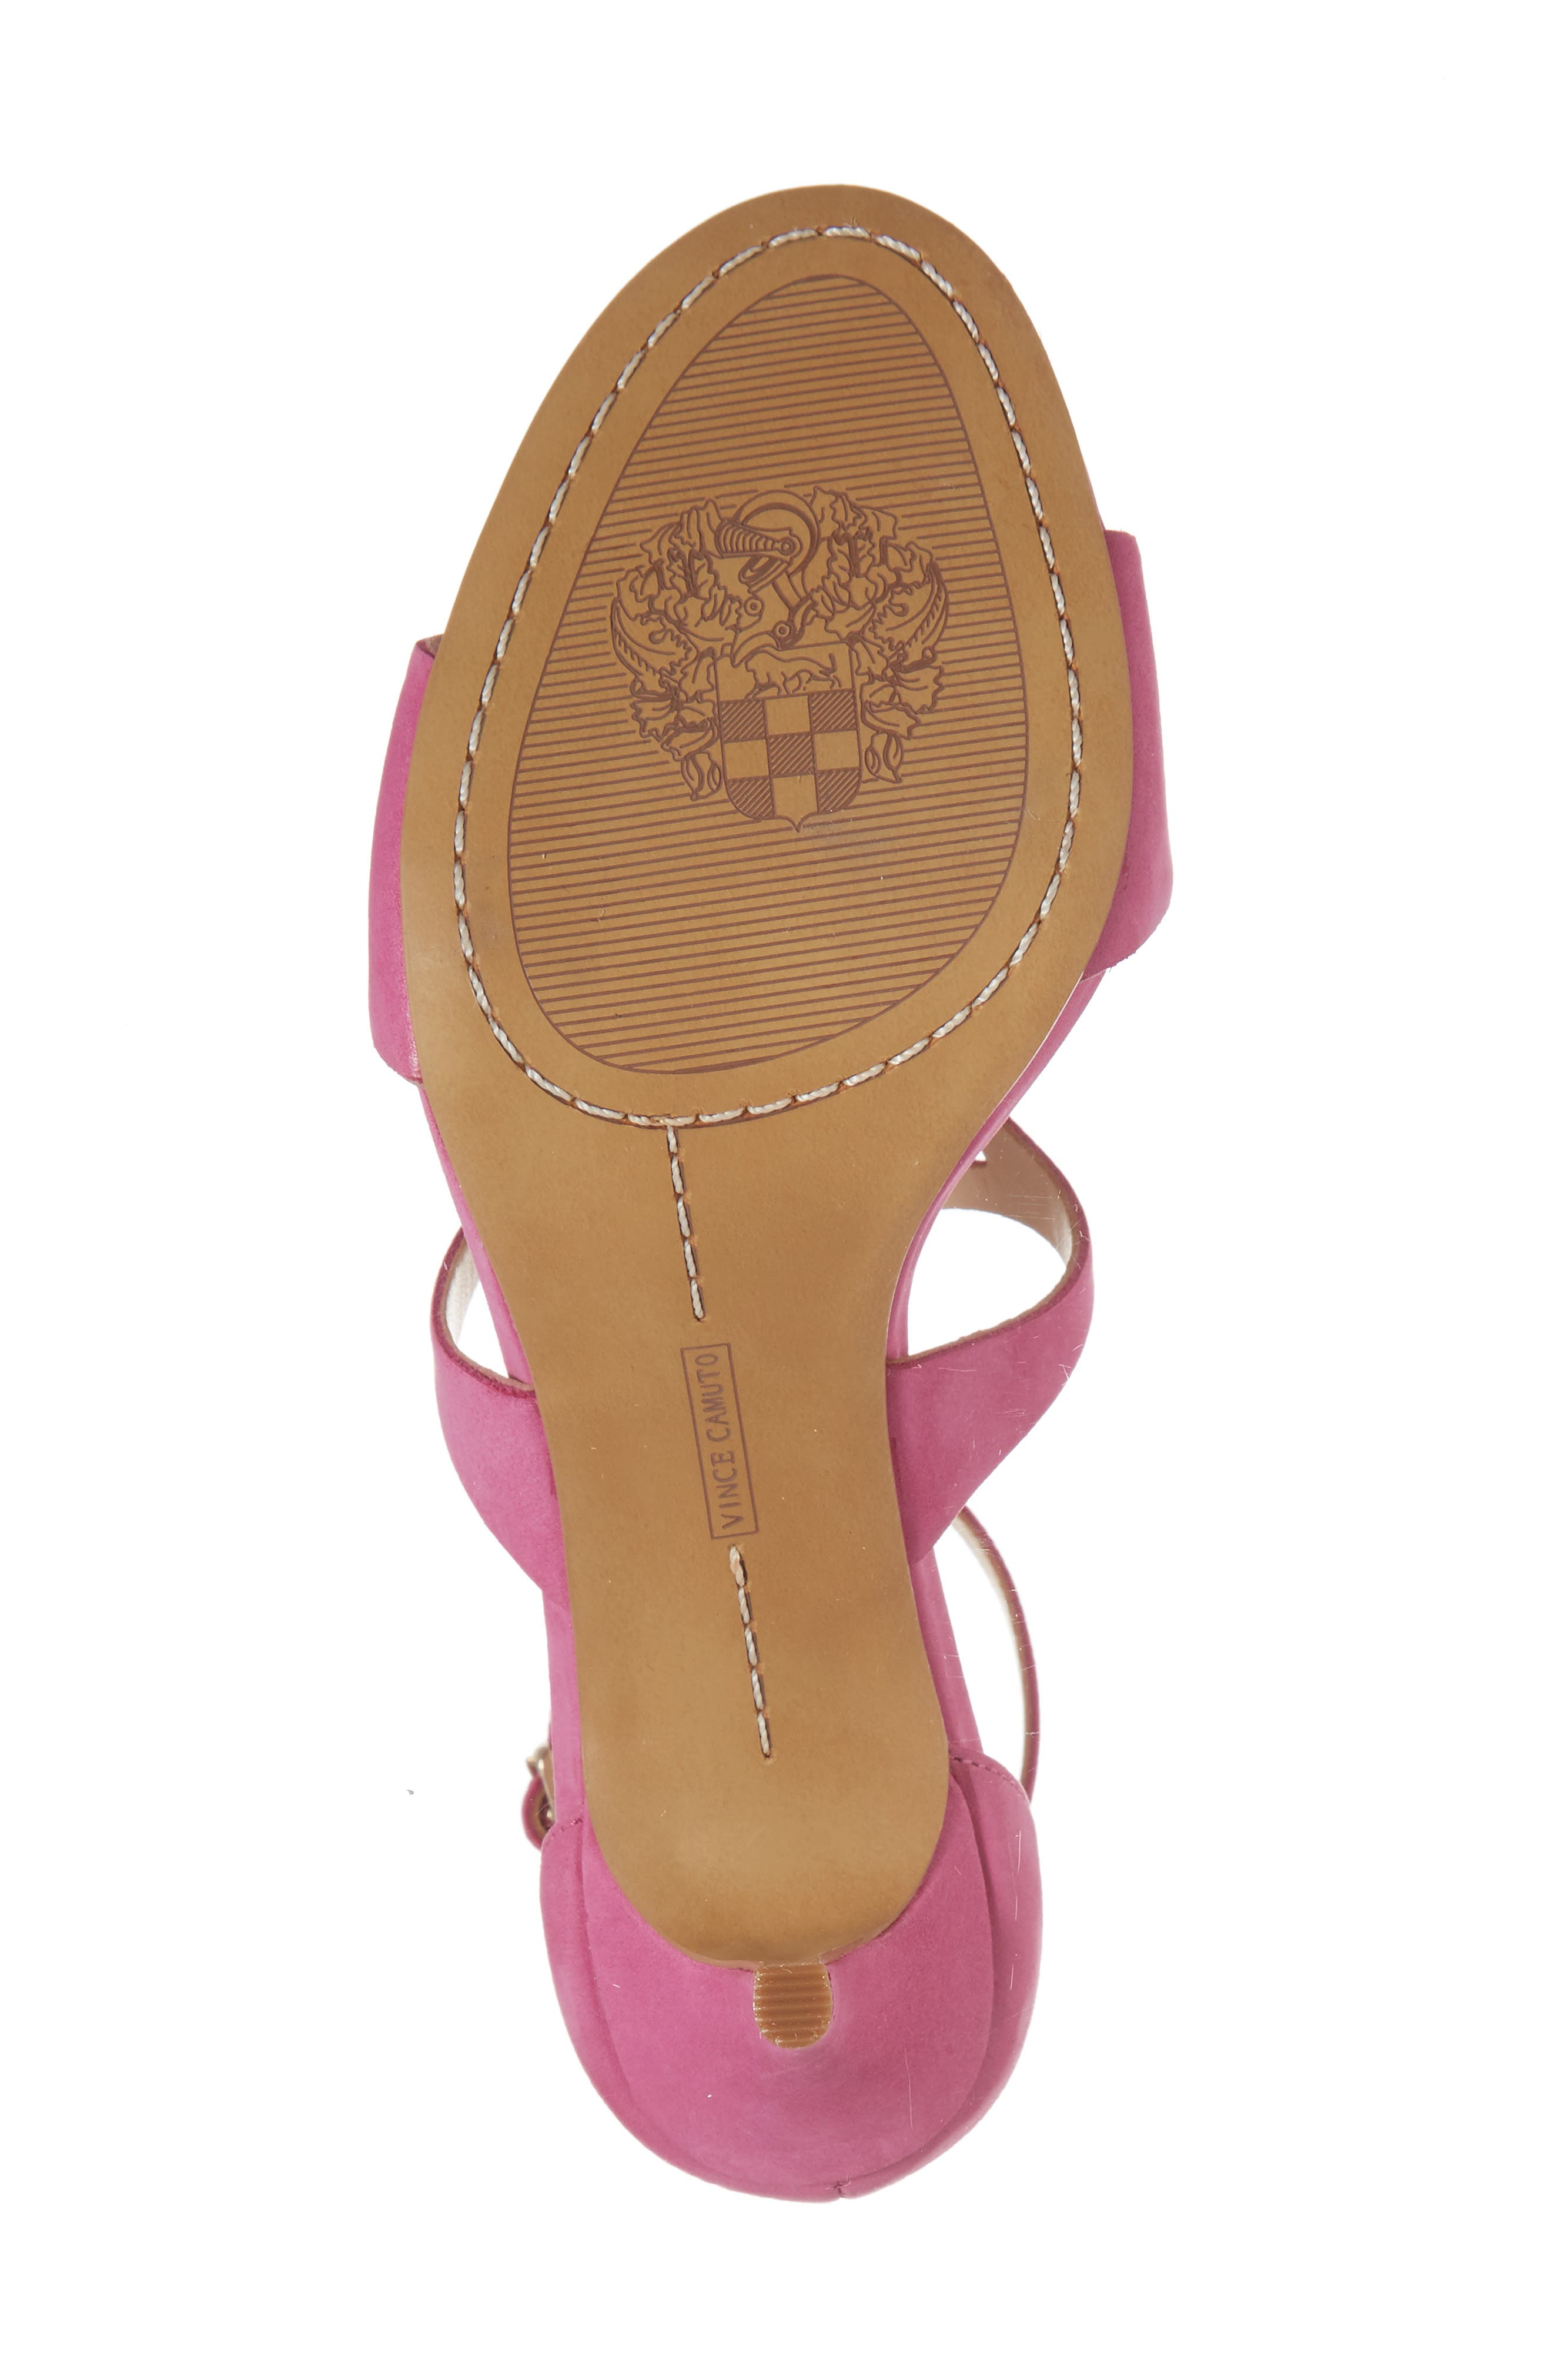 Payto Sandal,                             Alternate thumbnail 6, color,                             Pink Leather